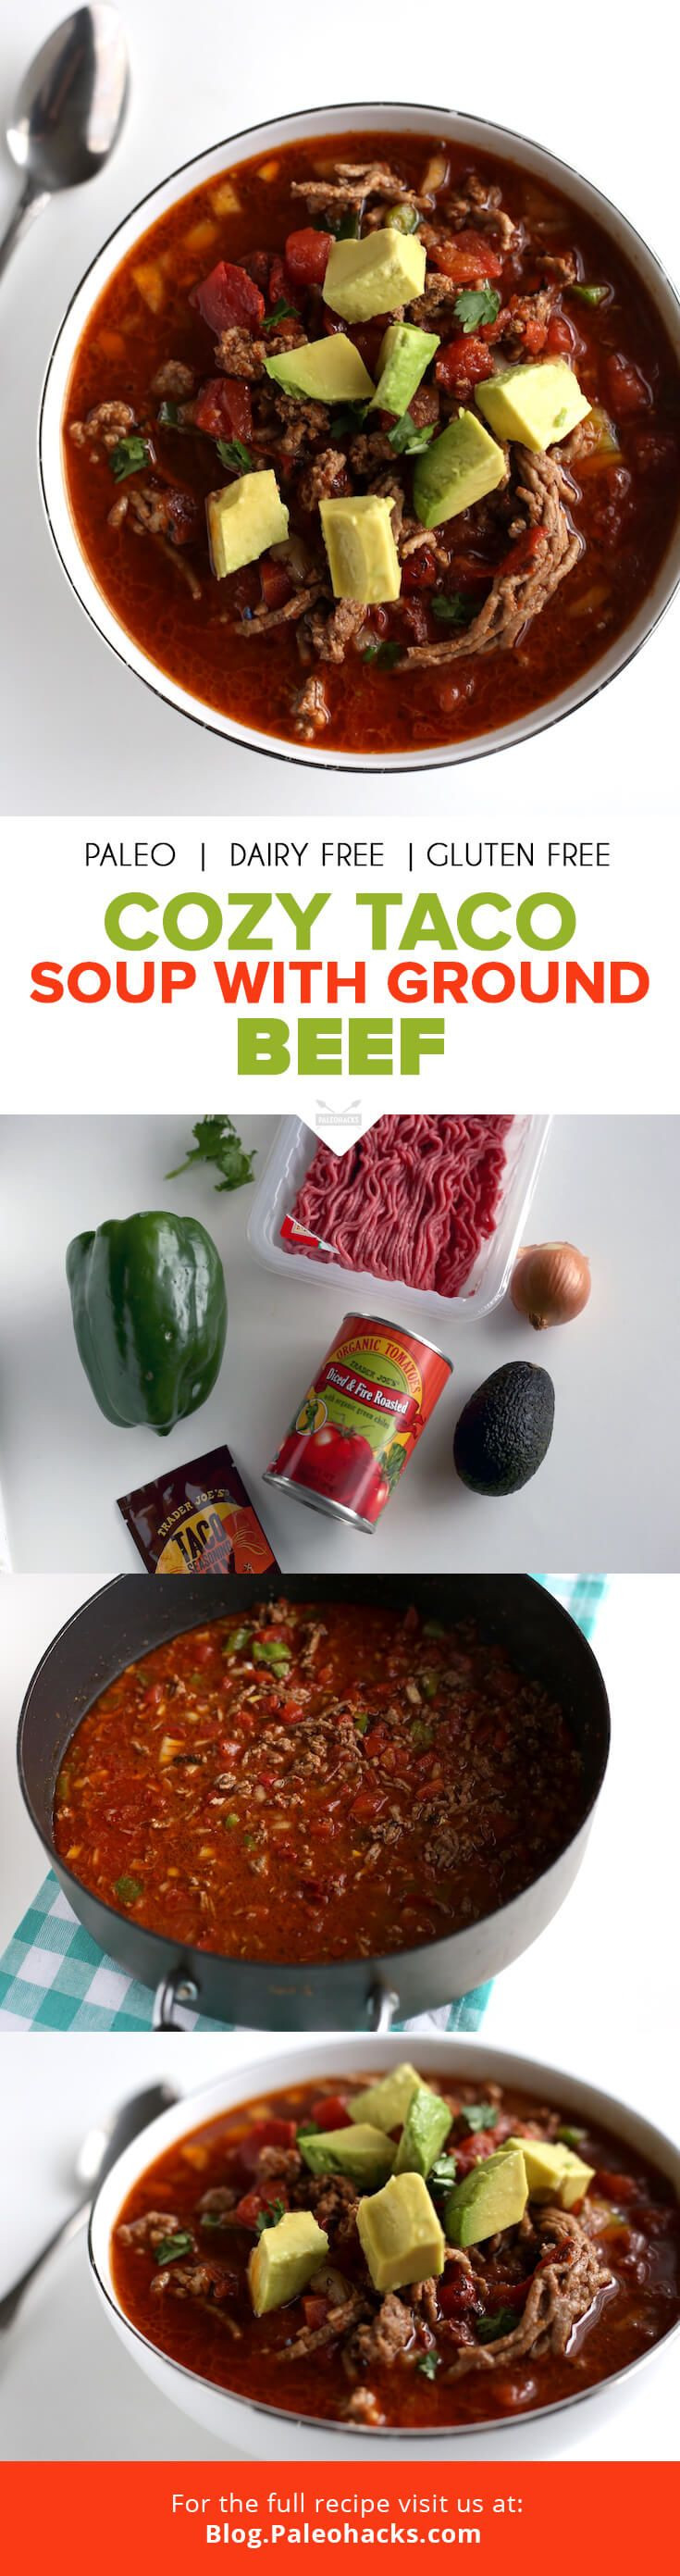 Healthy Taco Soup With Ground Beef  Cozy Taco Soup with Ground Beef